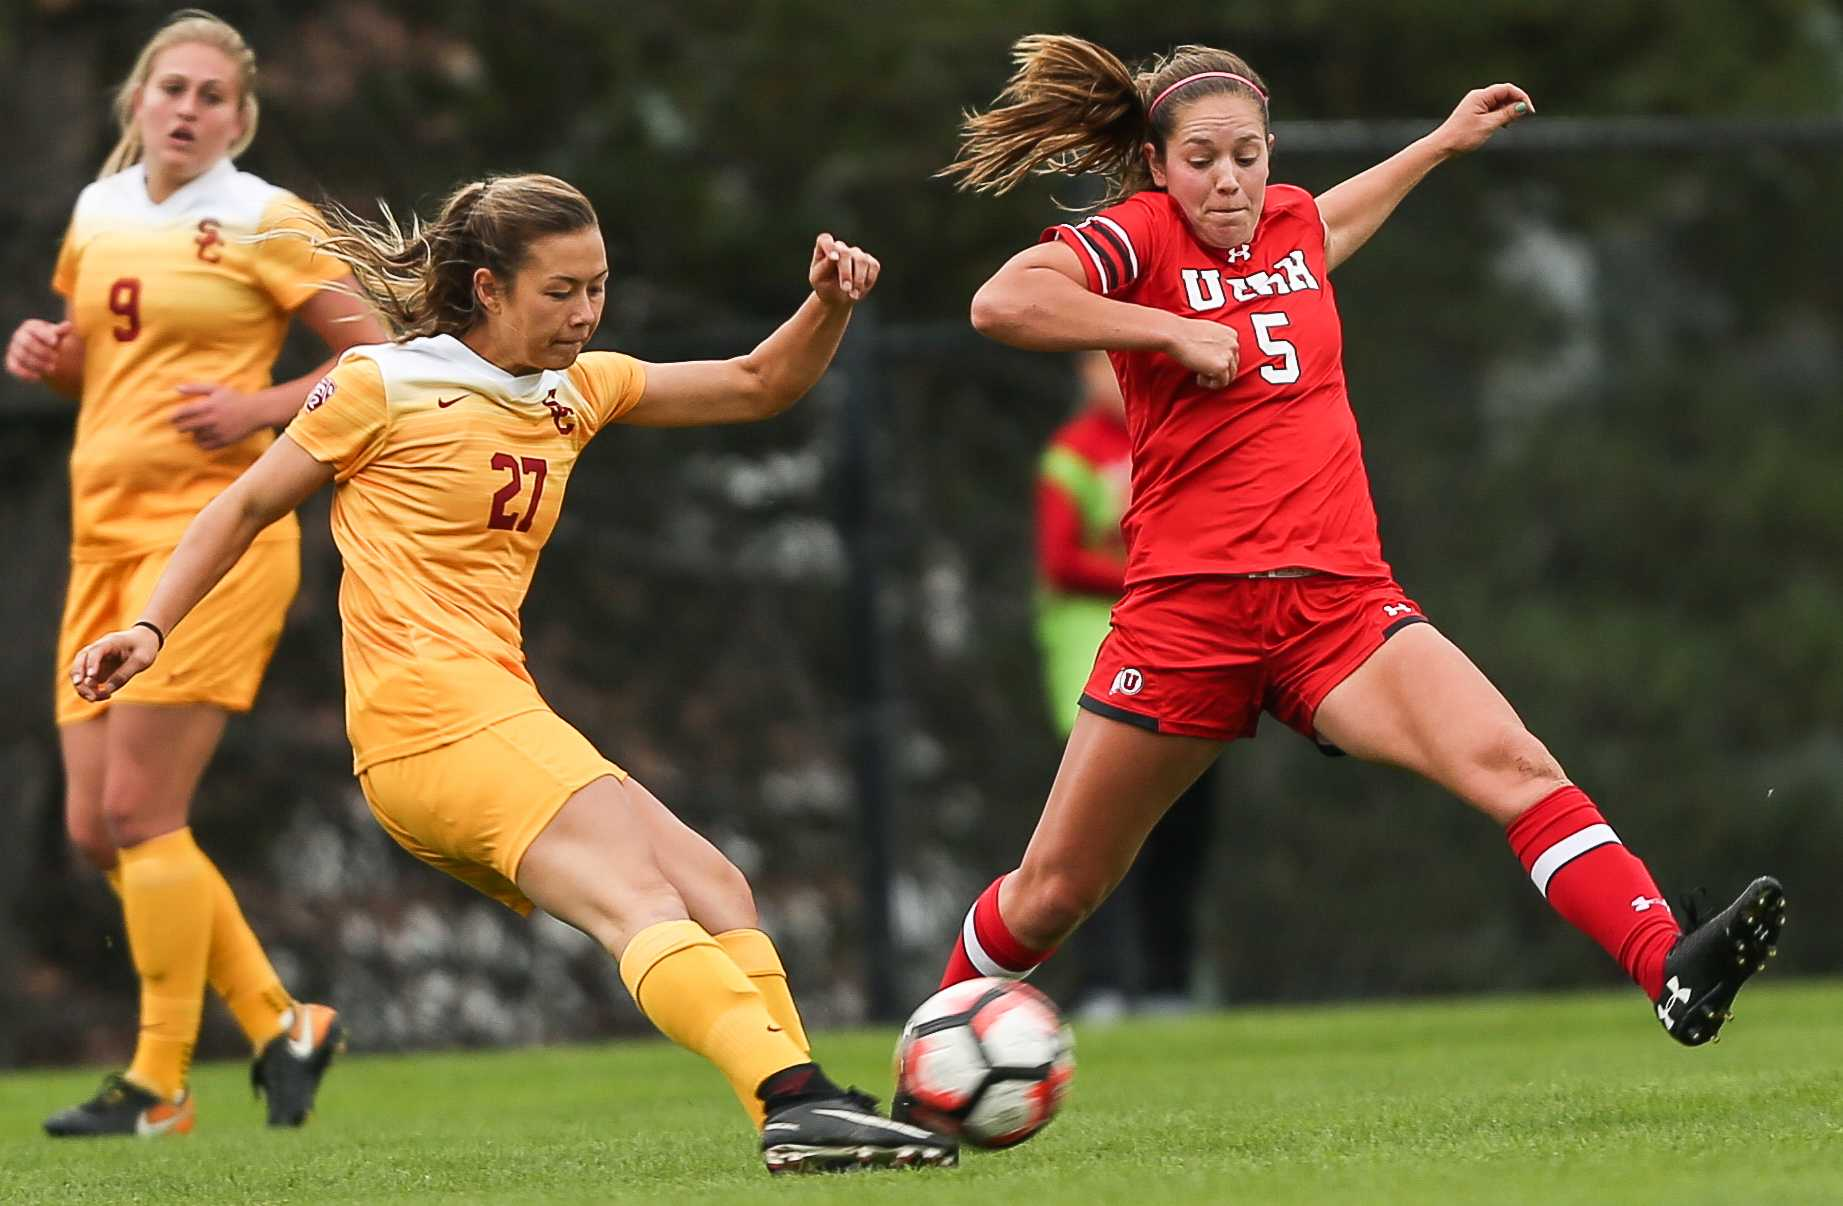 Janie Kearl (05) goes headed to head against Erika Okuma (27) during the Utah Utes Women's soccer tie game versus University of Southern California at Ute Soccer Field in Salt Lake City, UT on Saturday, September 23, 2017.  (Photo by Cassandra Palor/ Daily Utah Chronicle)